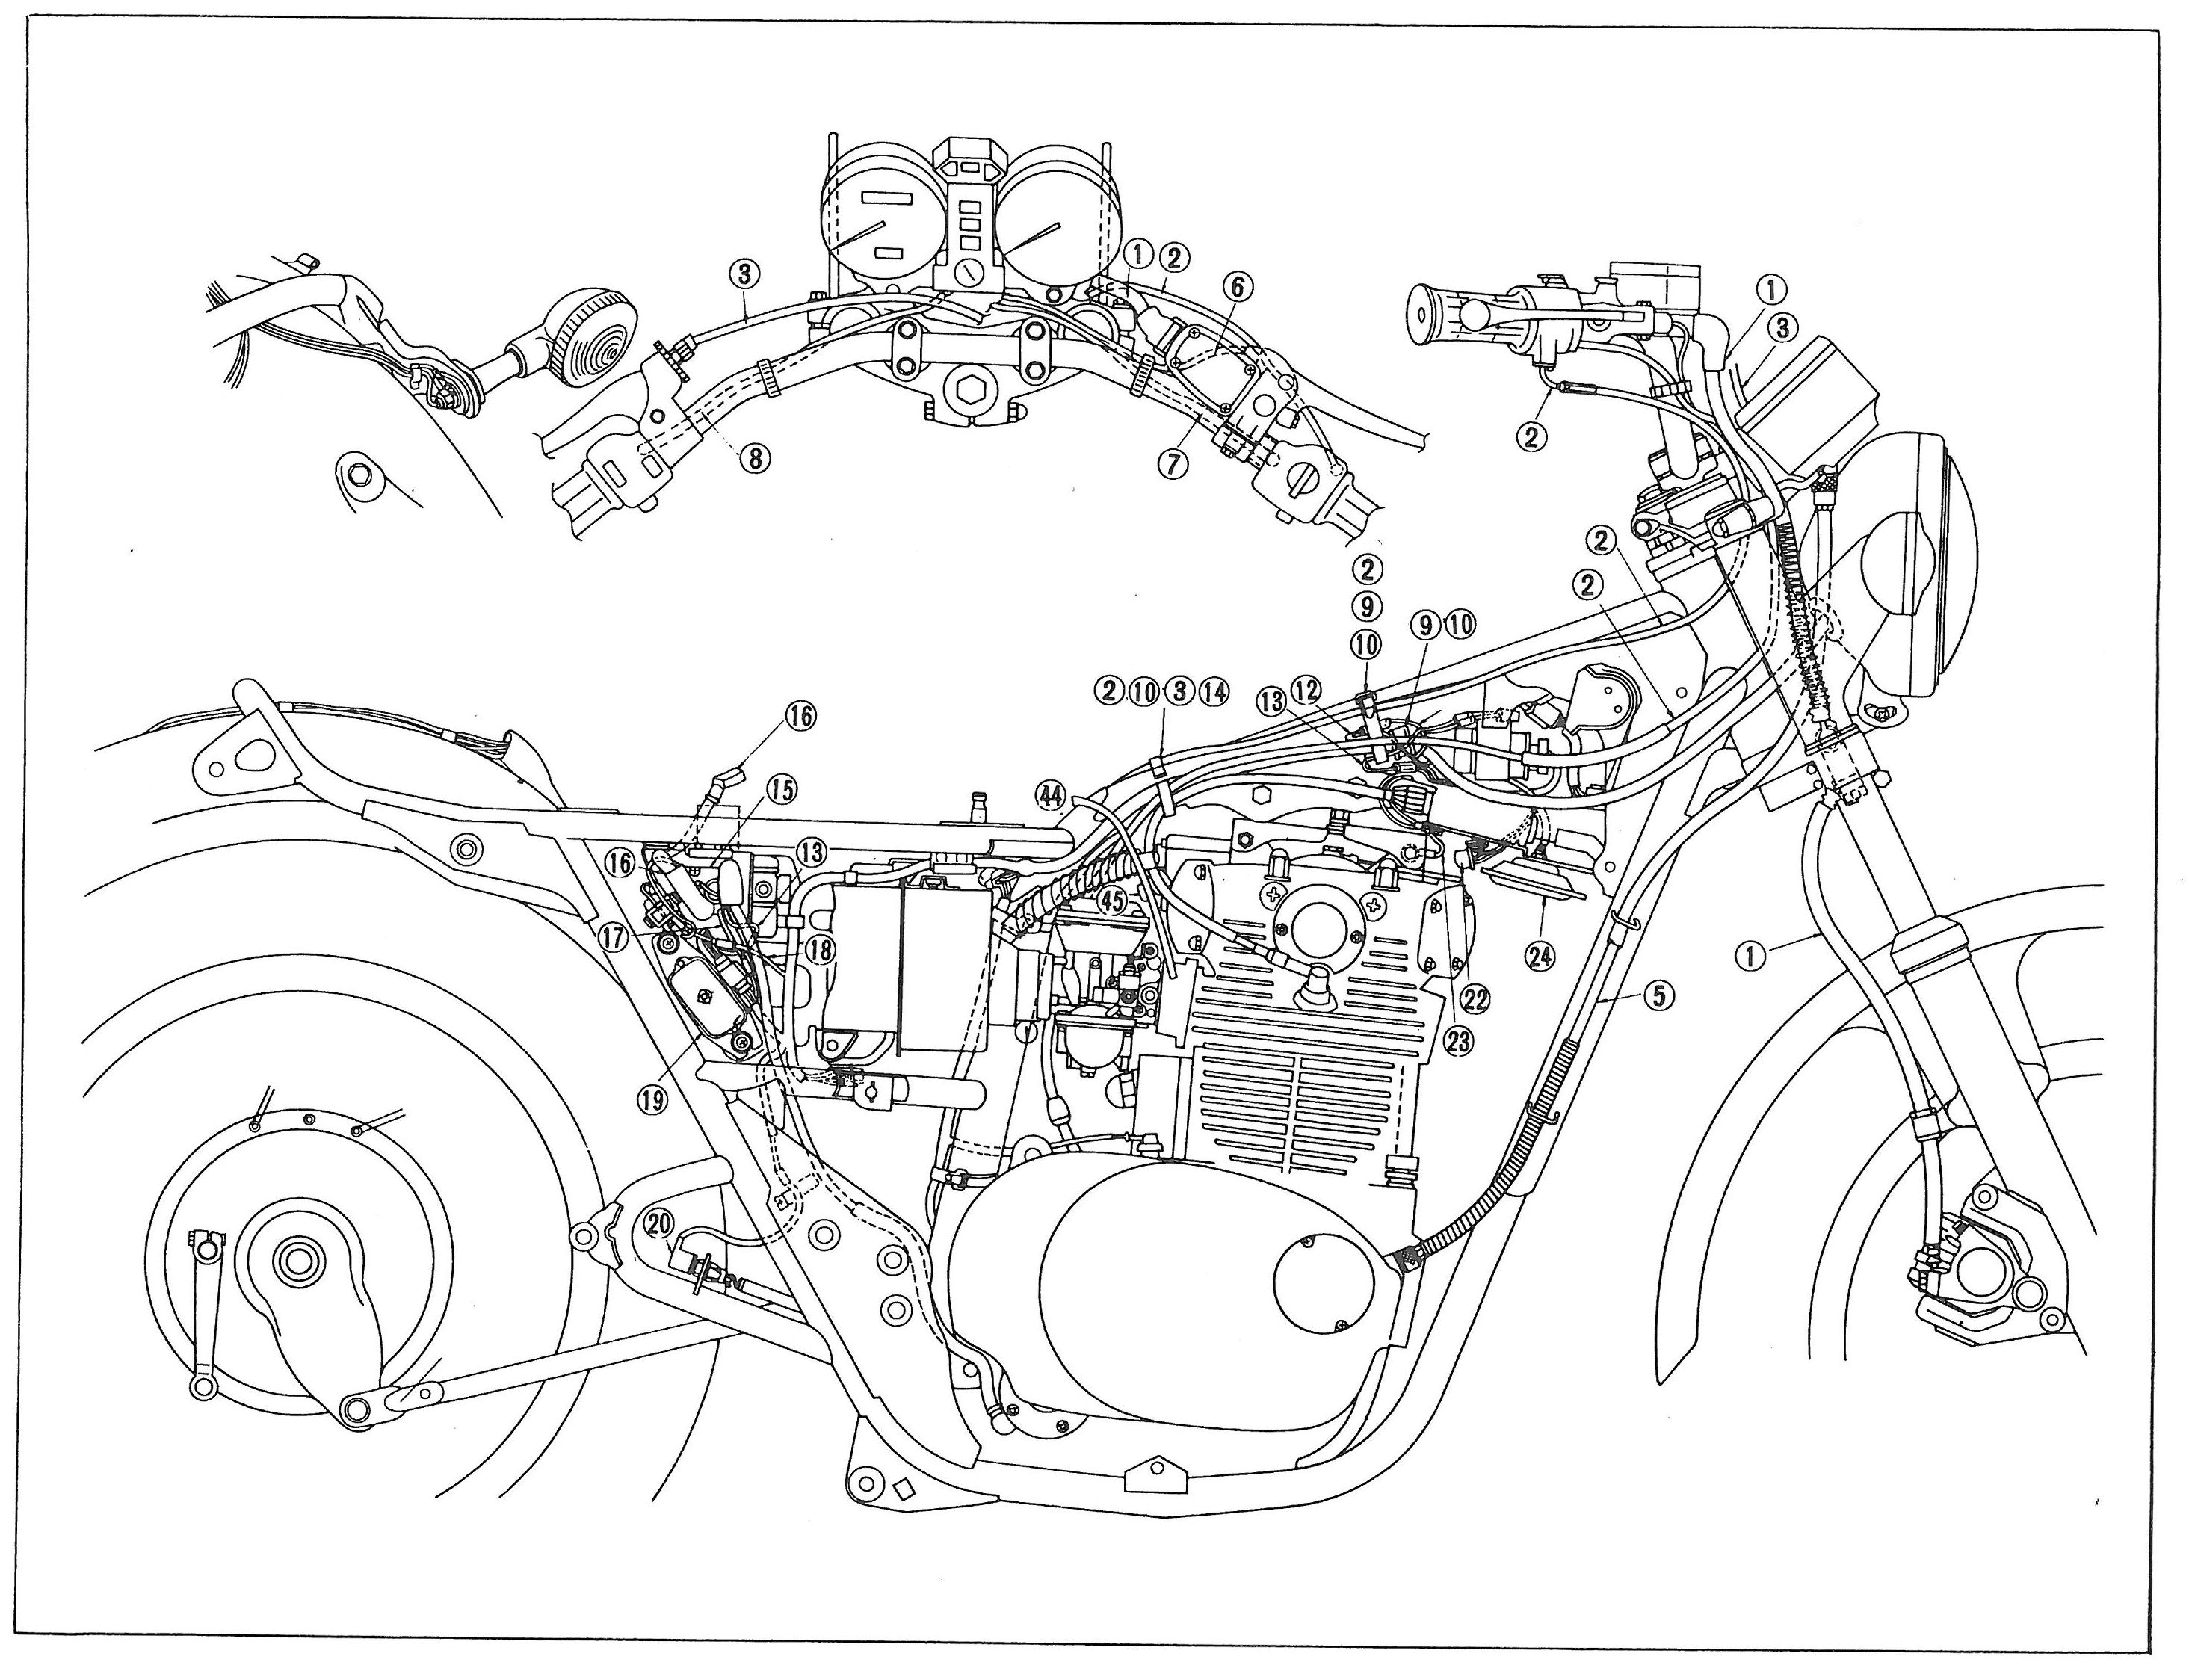 small resolution of 1981 xs650 engine diagram wiring diagram used 1981 xs650 engine diagram